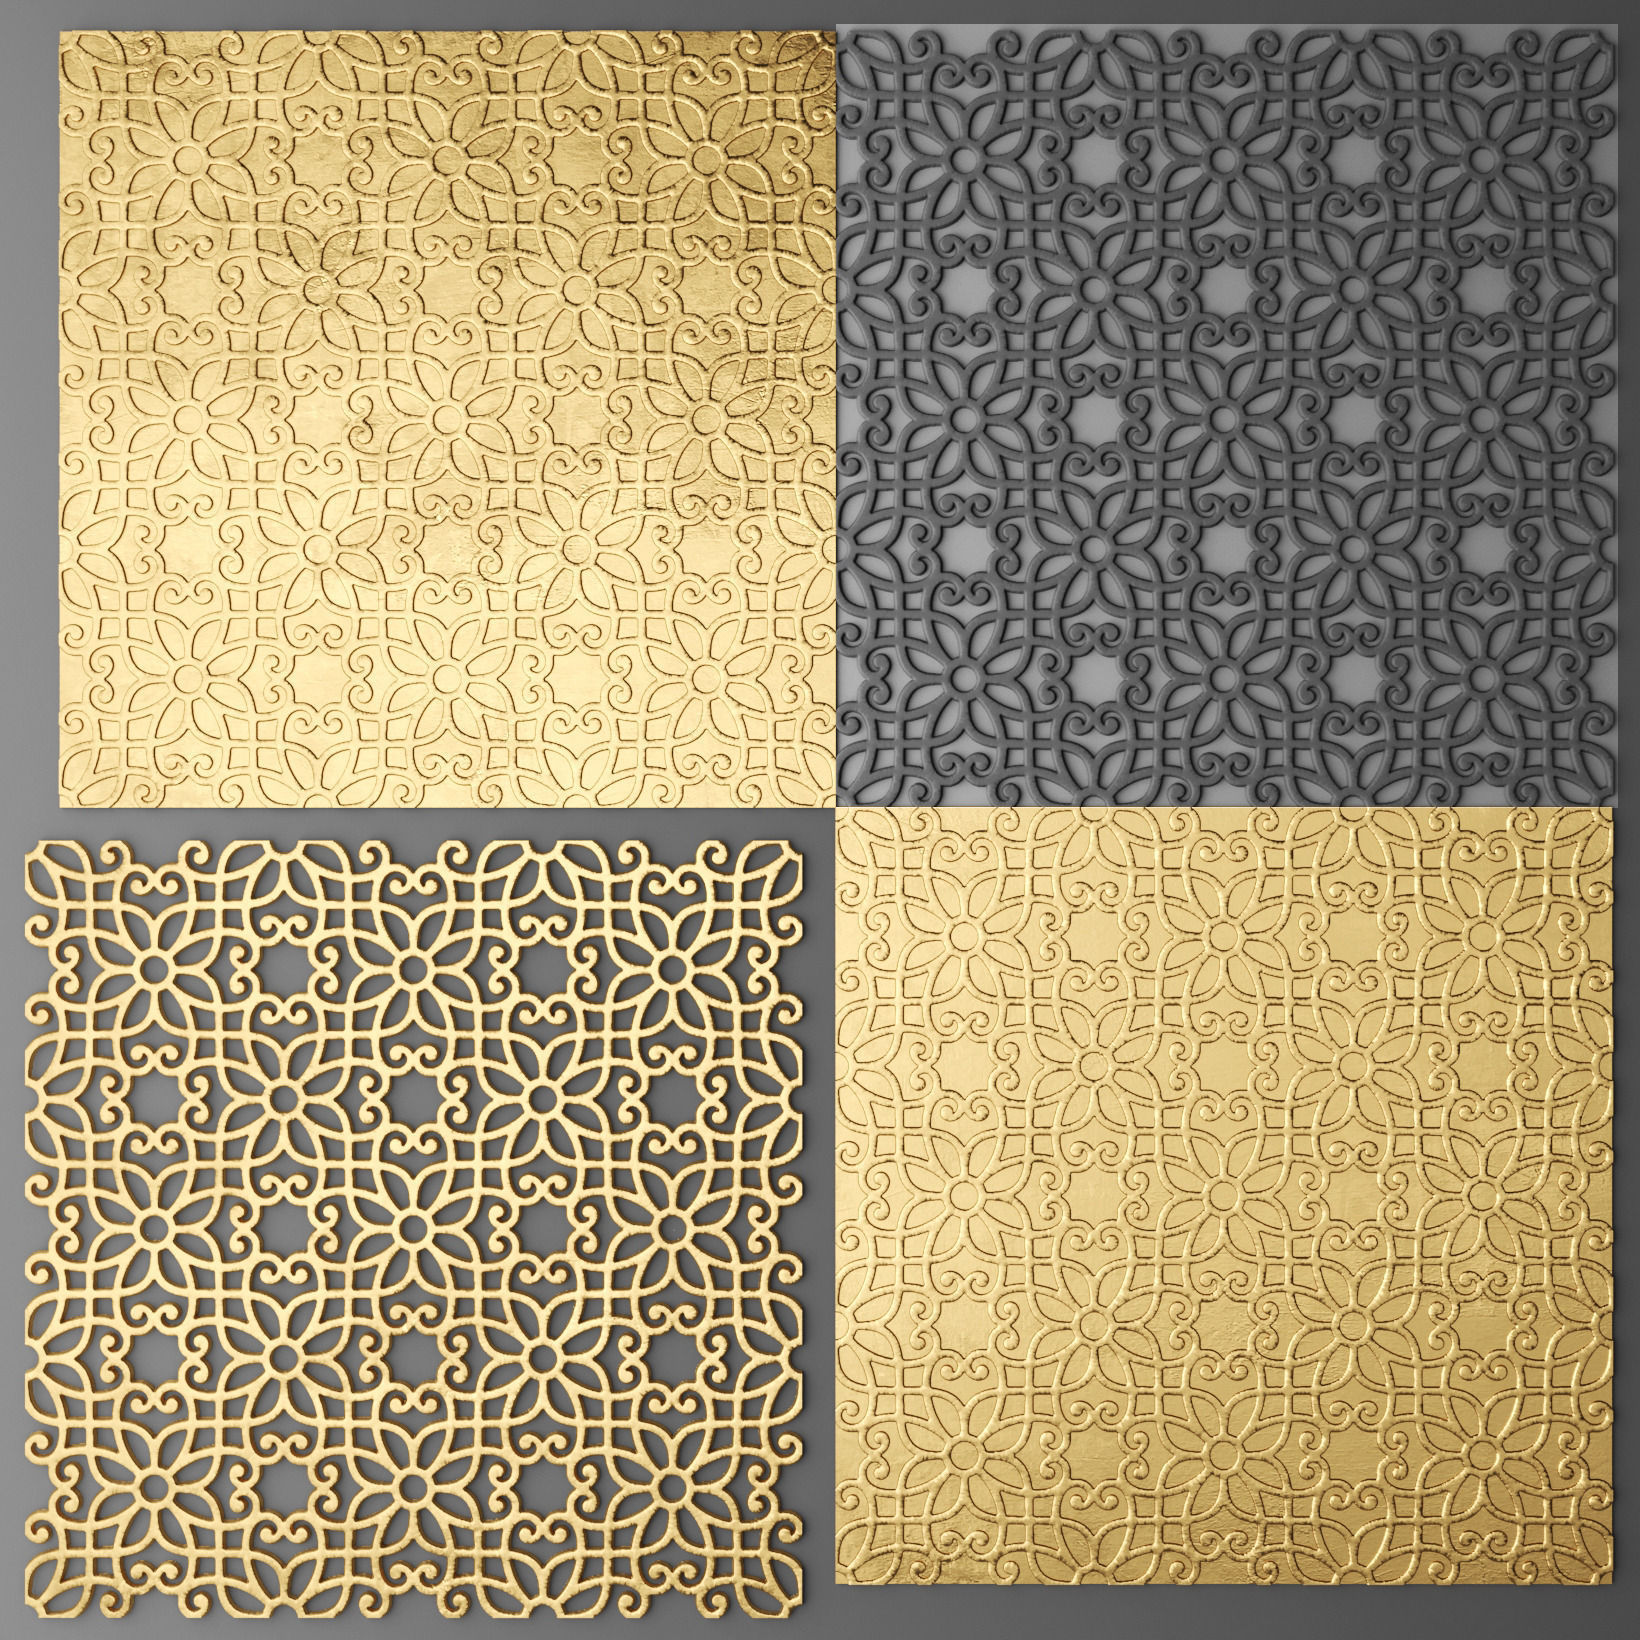 Lattice Arab panel 3D 9